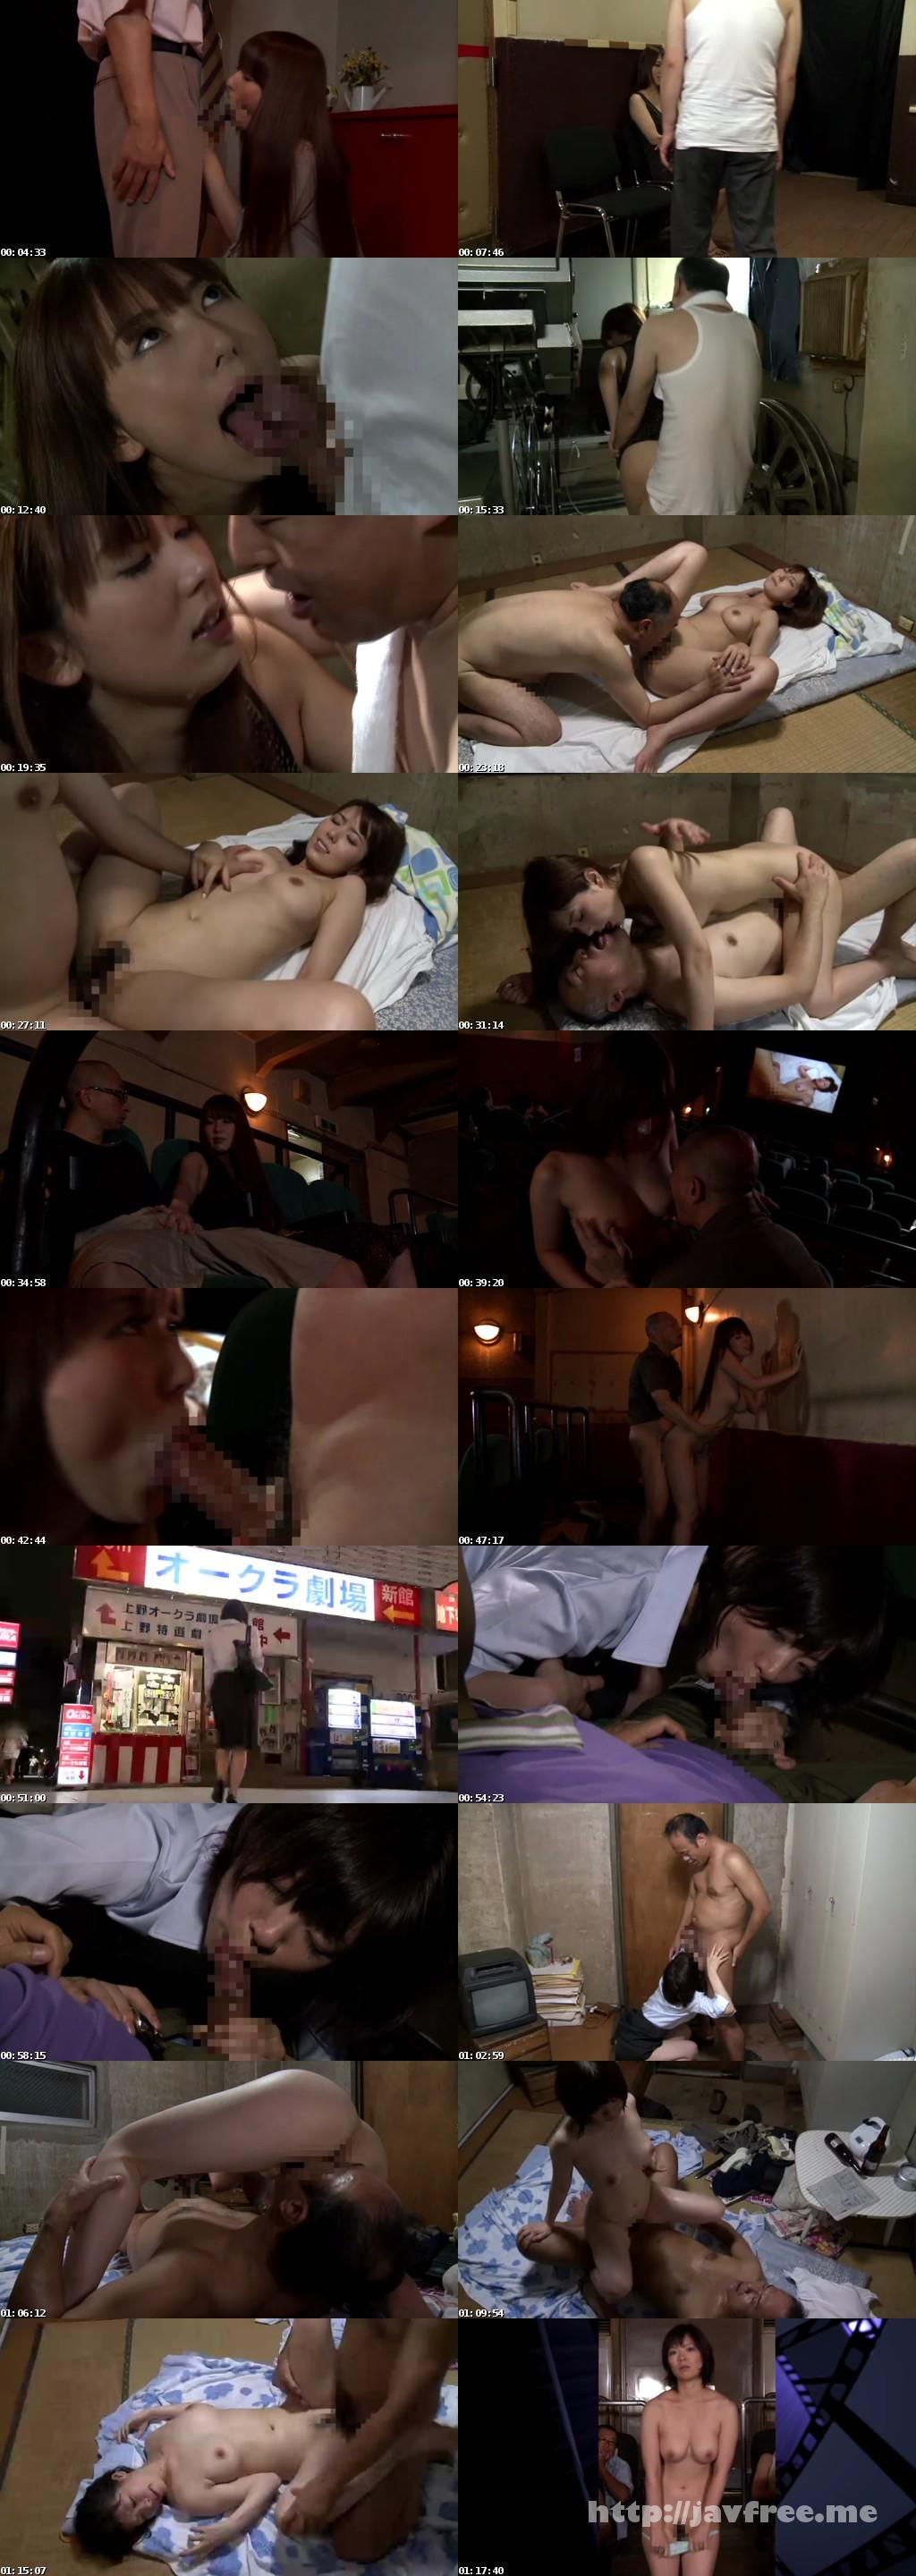 [AKBS-008] 暗闇の映画館 変態人妻痴女 - image AKBS-008 on https://javfree.me